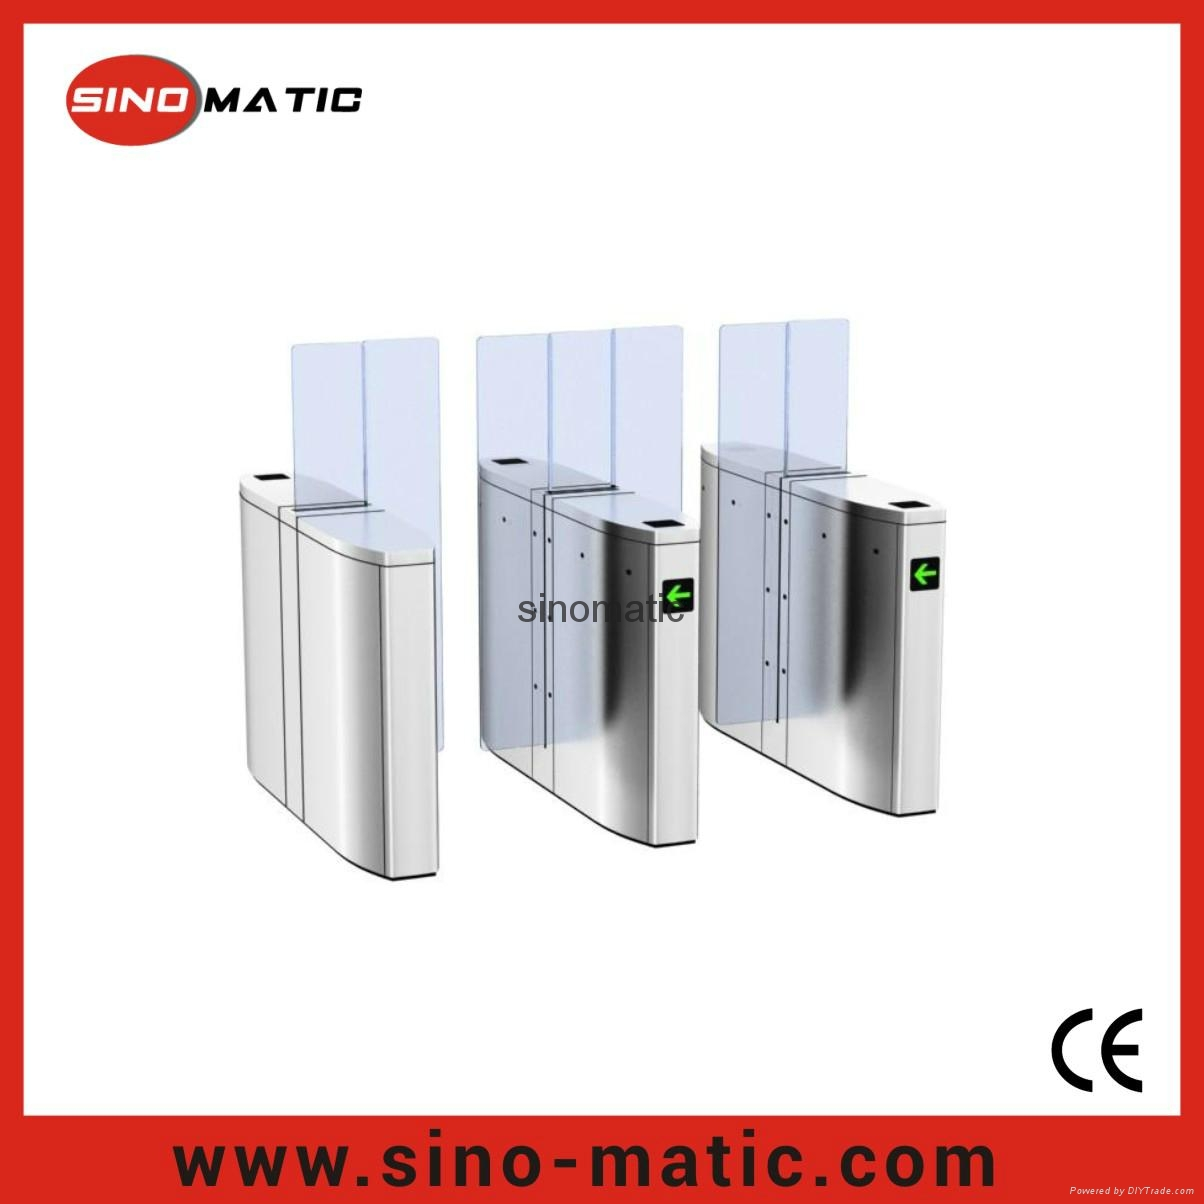 Stainless steel security pedestriam access control sliding